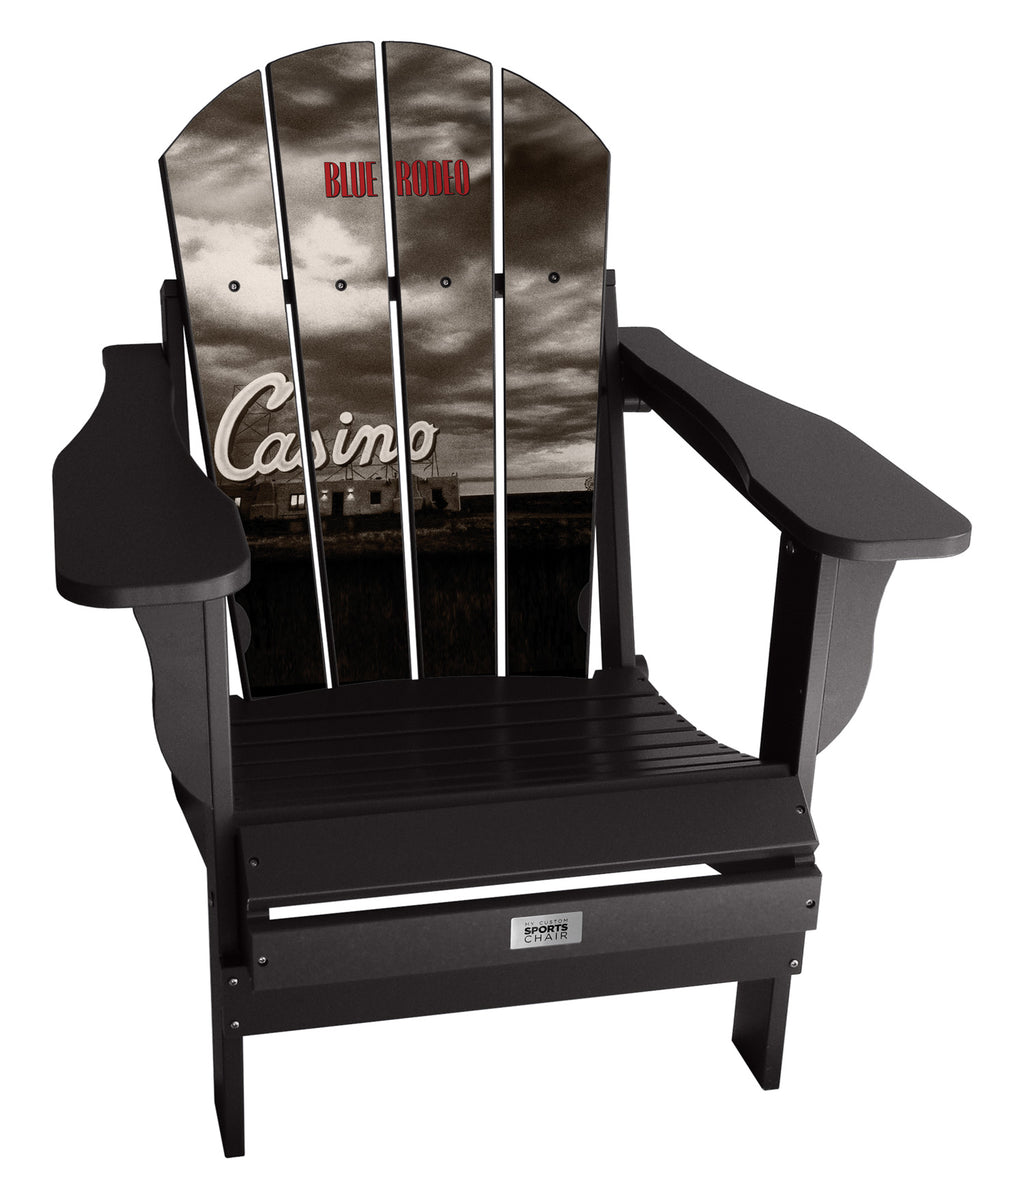 Officially Licensed Casino Chair